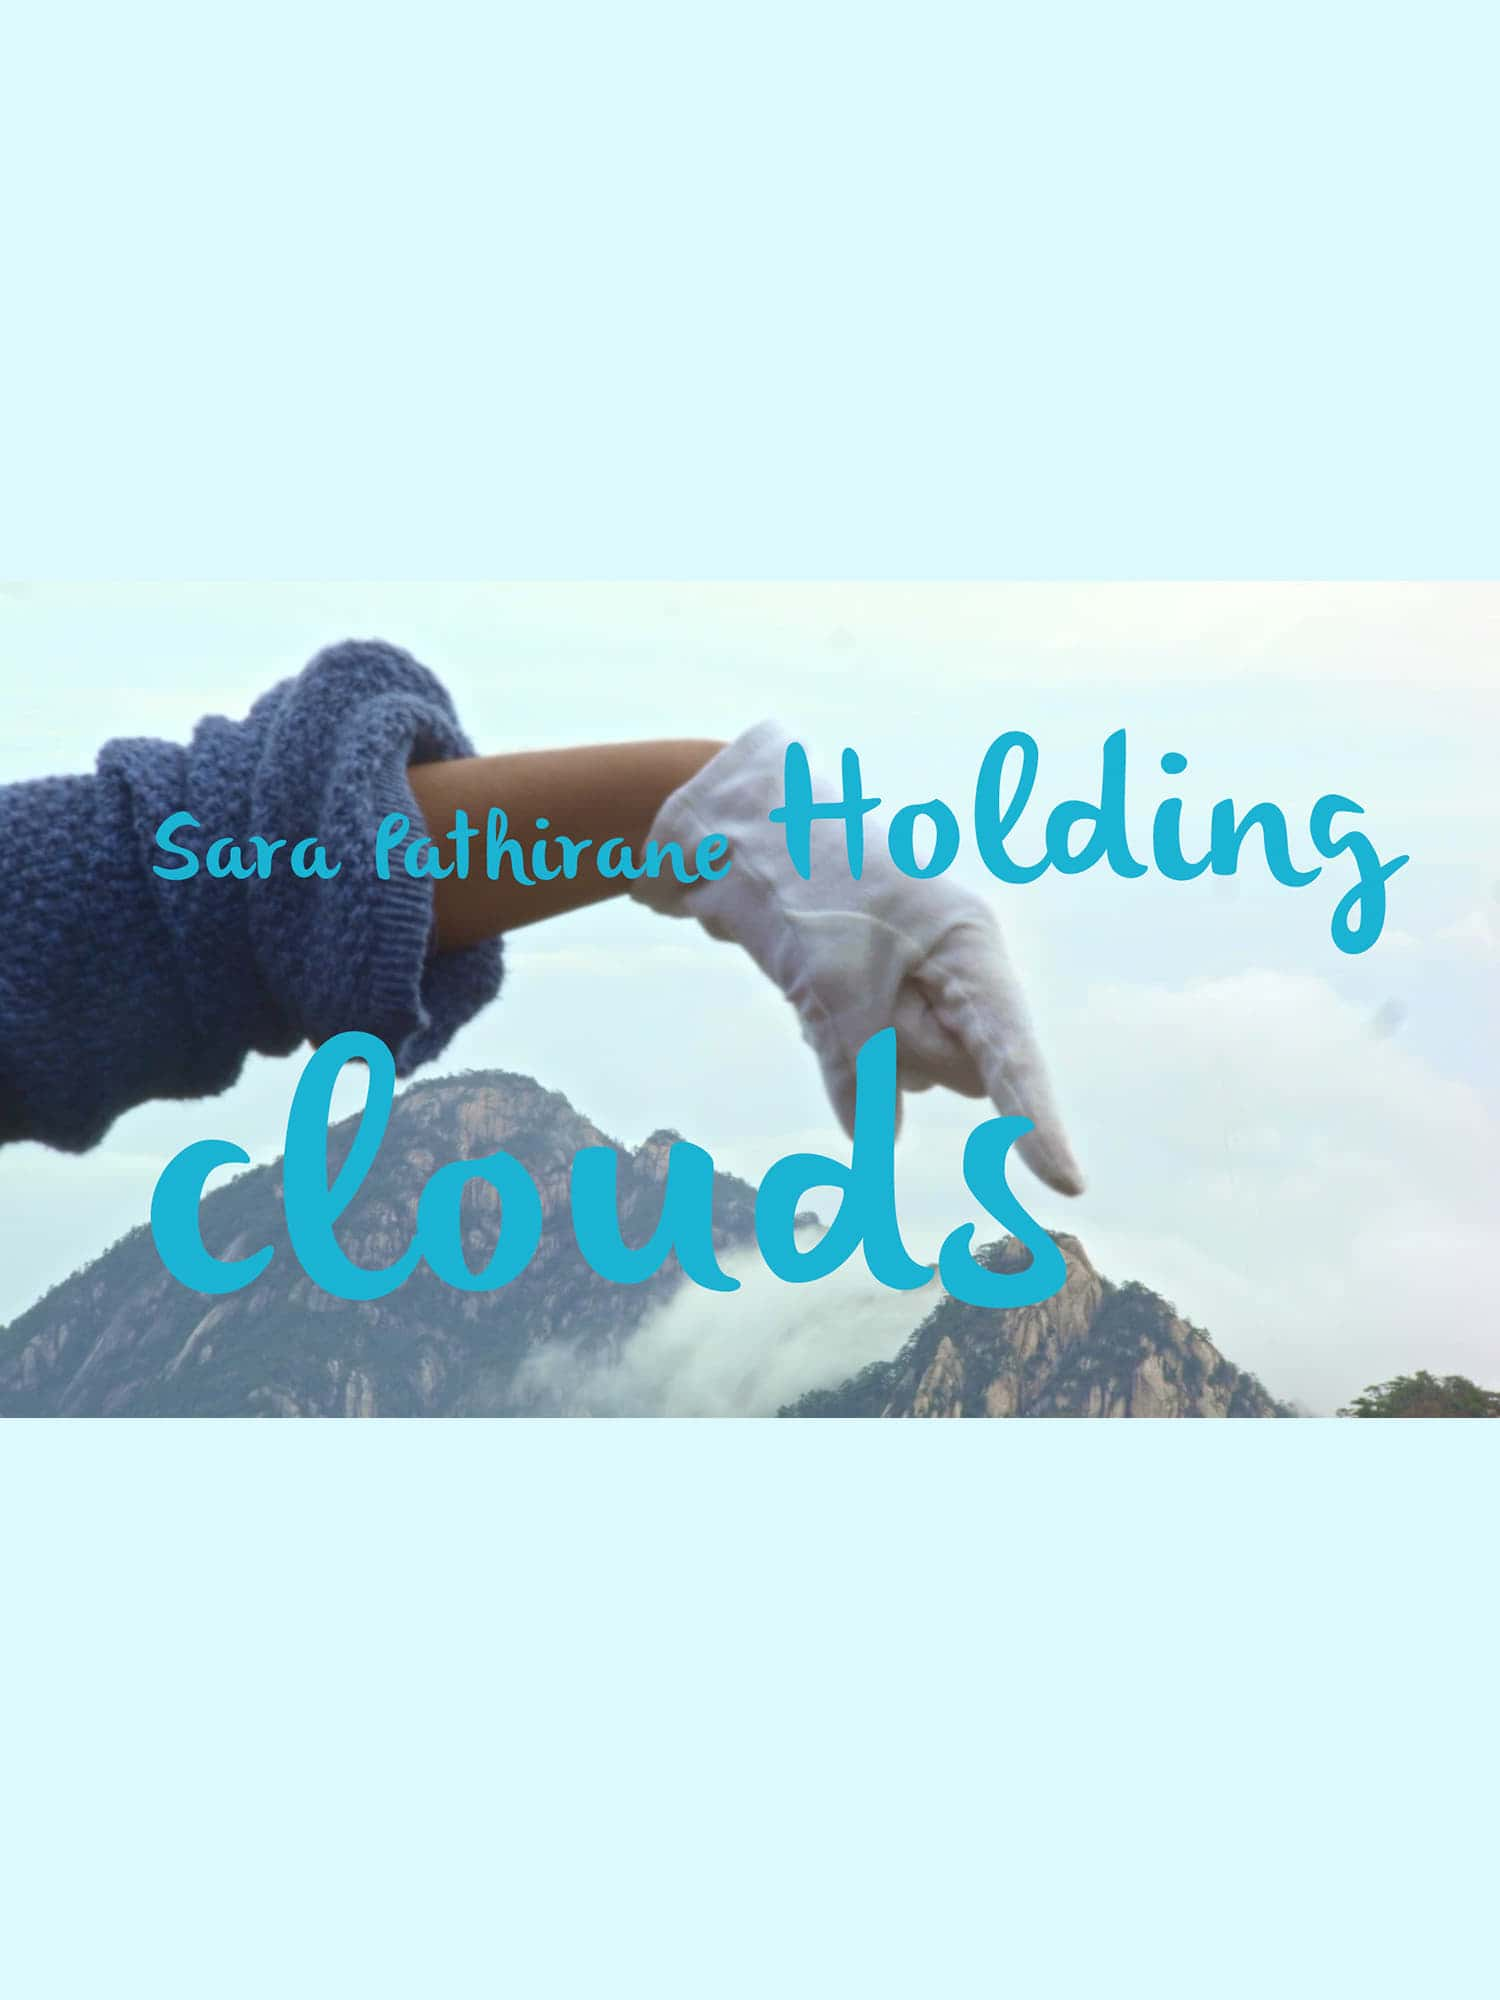 Holding Clouds